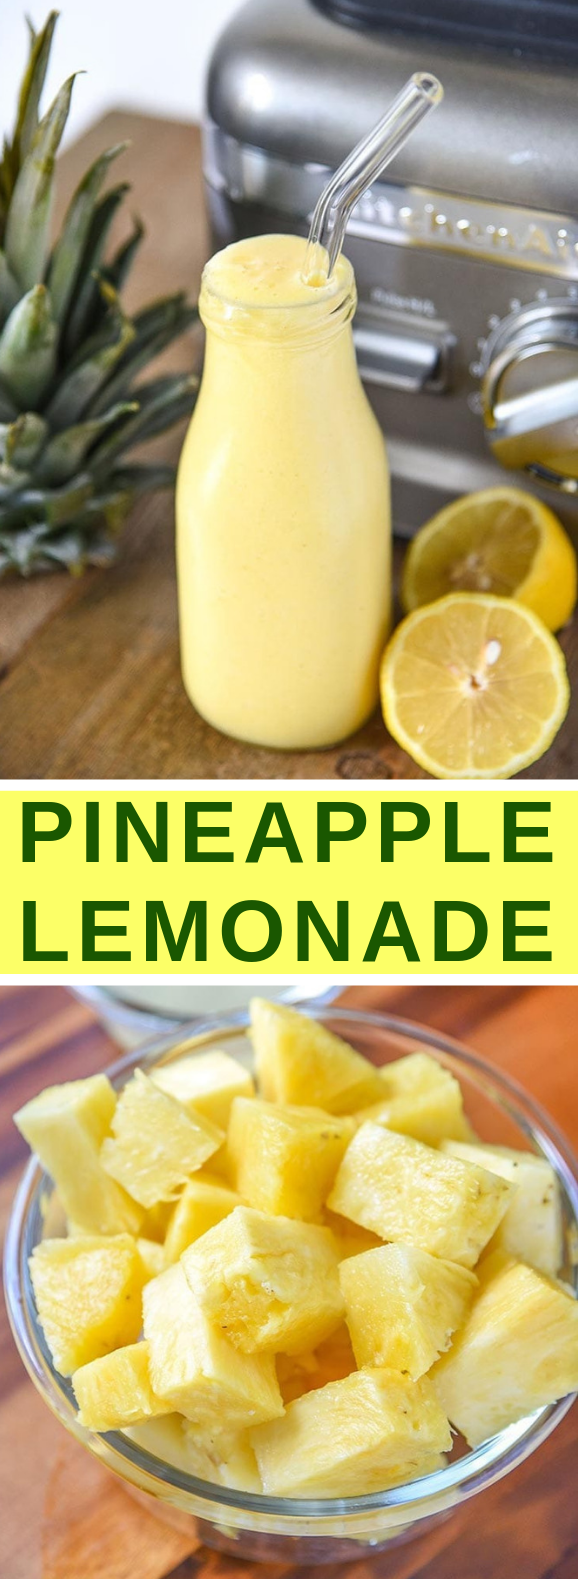 Pineapple Lemonade Recipe #drinks #freshdrink